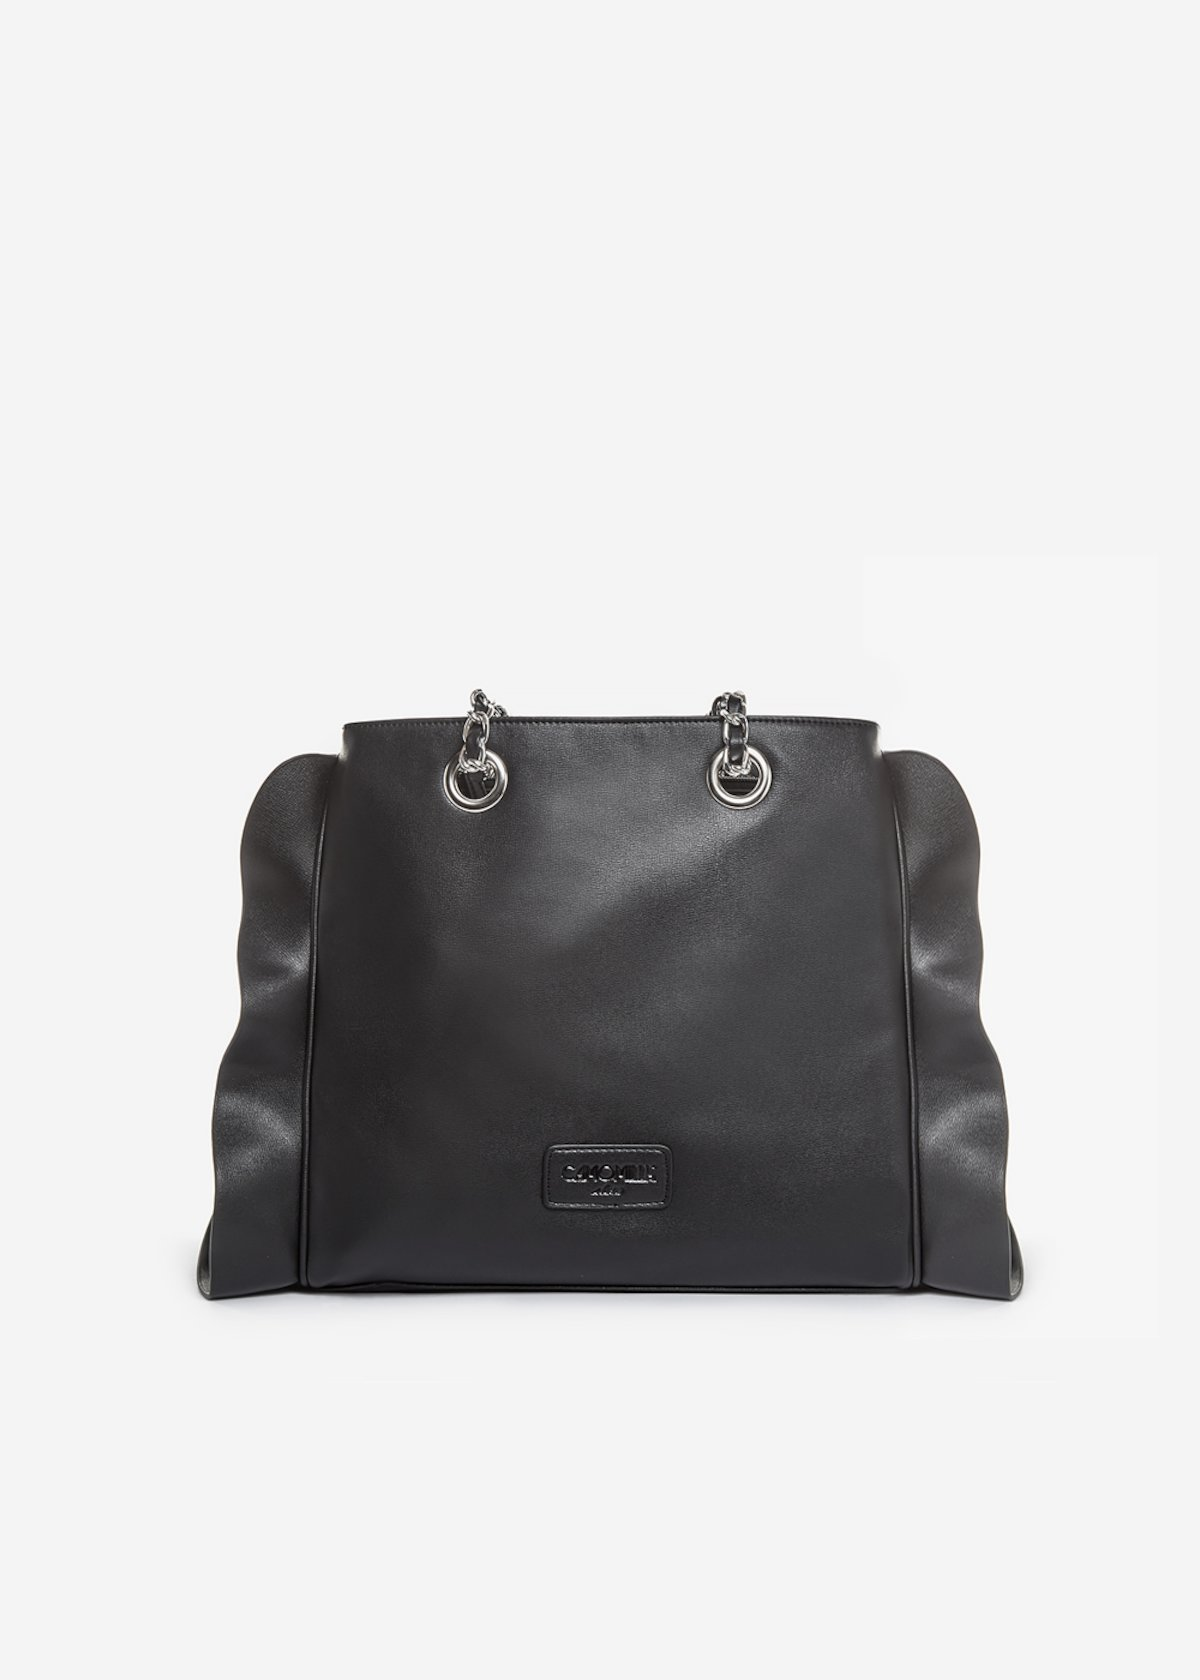 Besmira bag ruffle effect black - Black